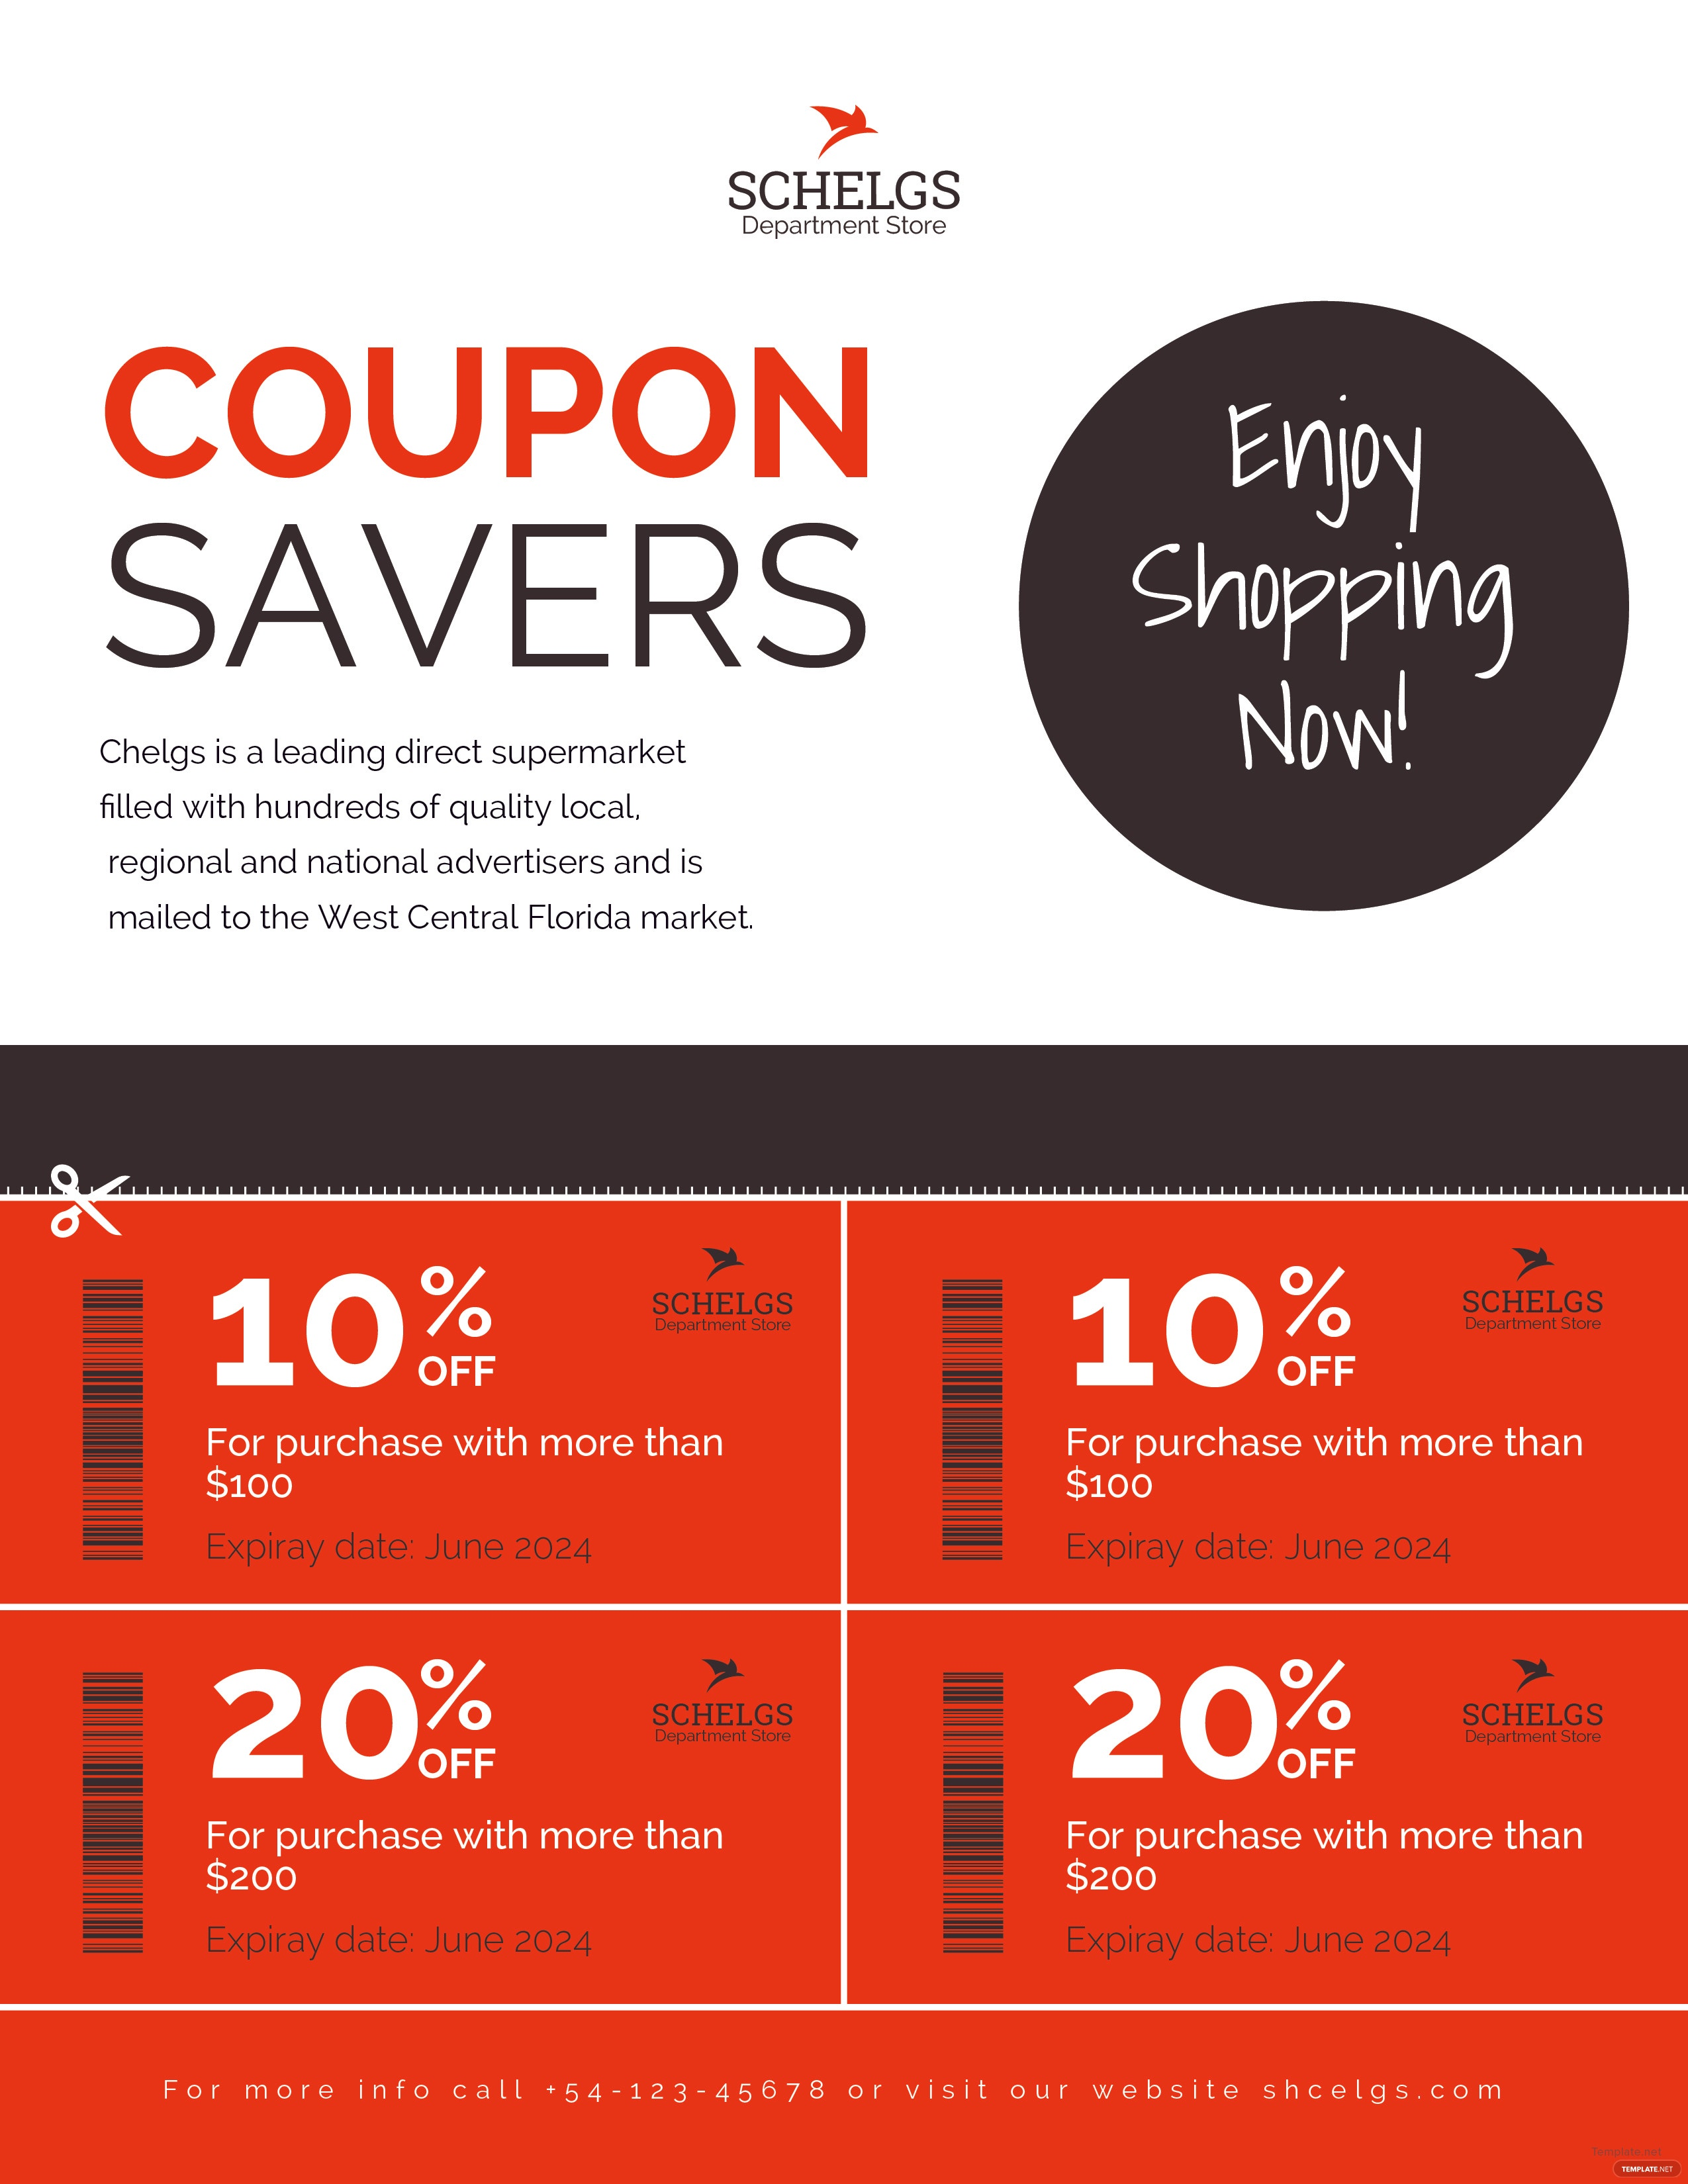 Free Sample Coupon Flyer Template in Adobe Photoshop, Microsoft Word ...